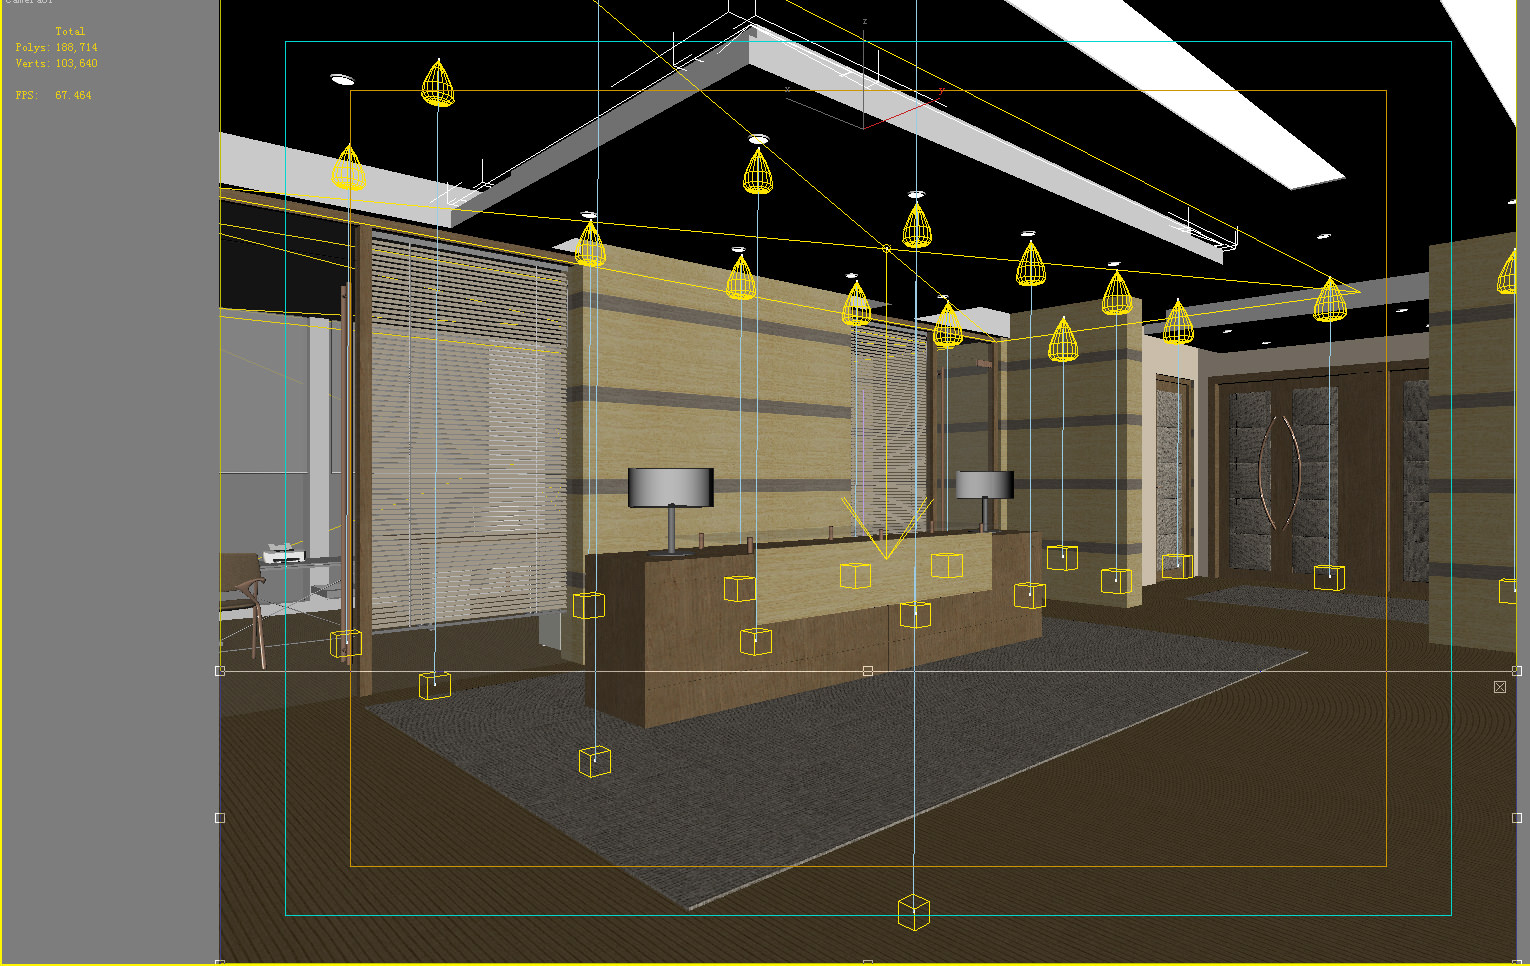 Banquet hall reception area download 3d house - Reception Hall With False Ceiling 3d Model Max 2